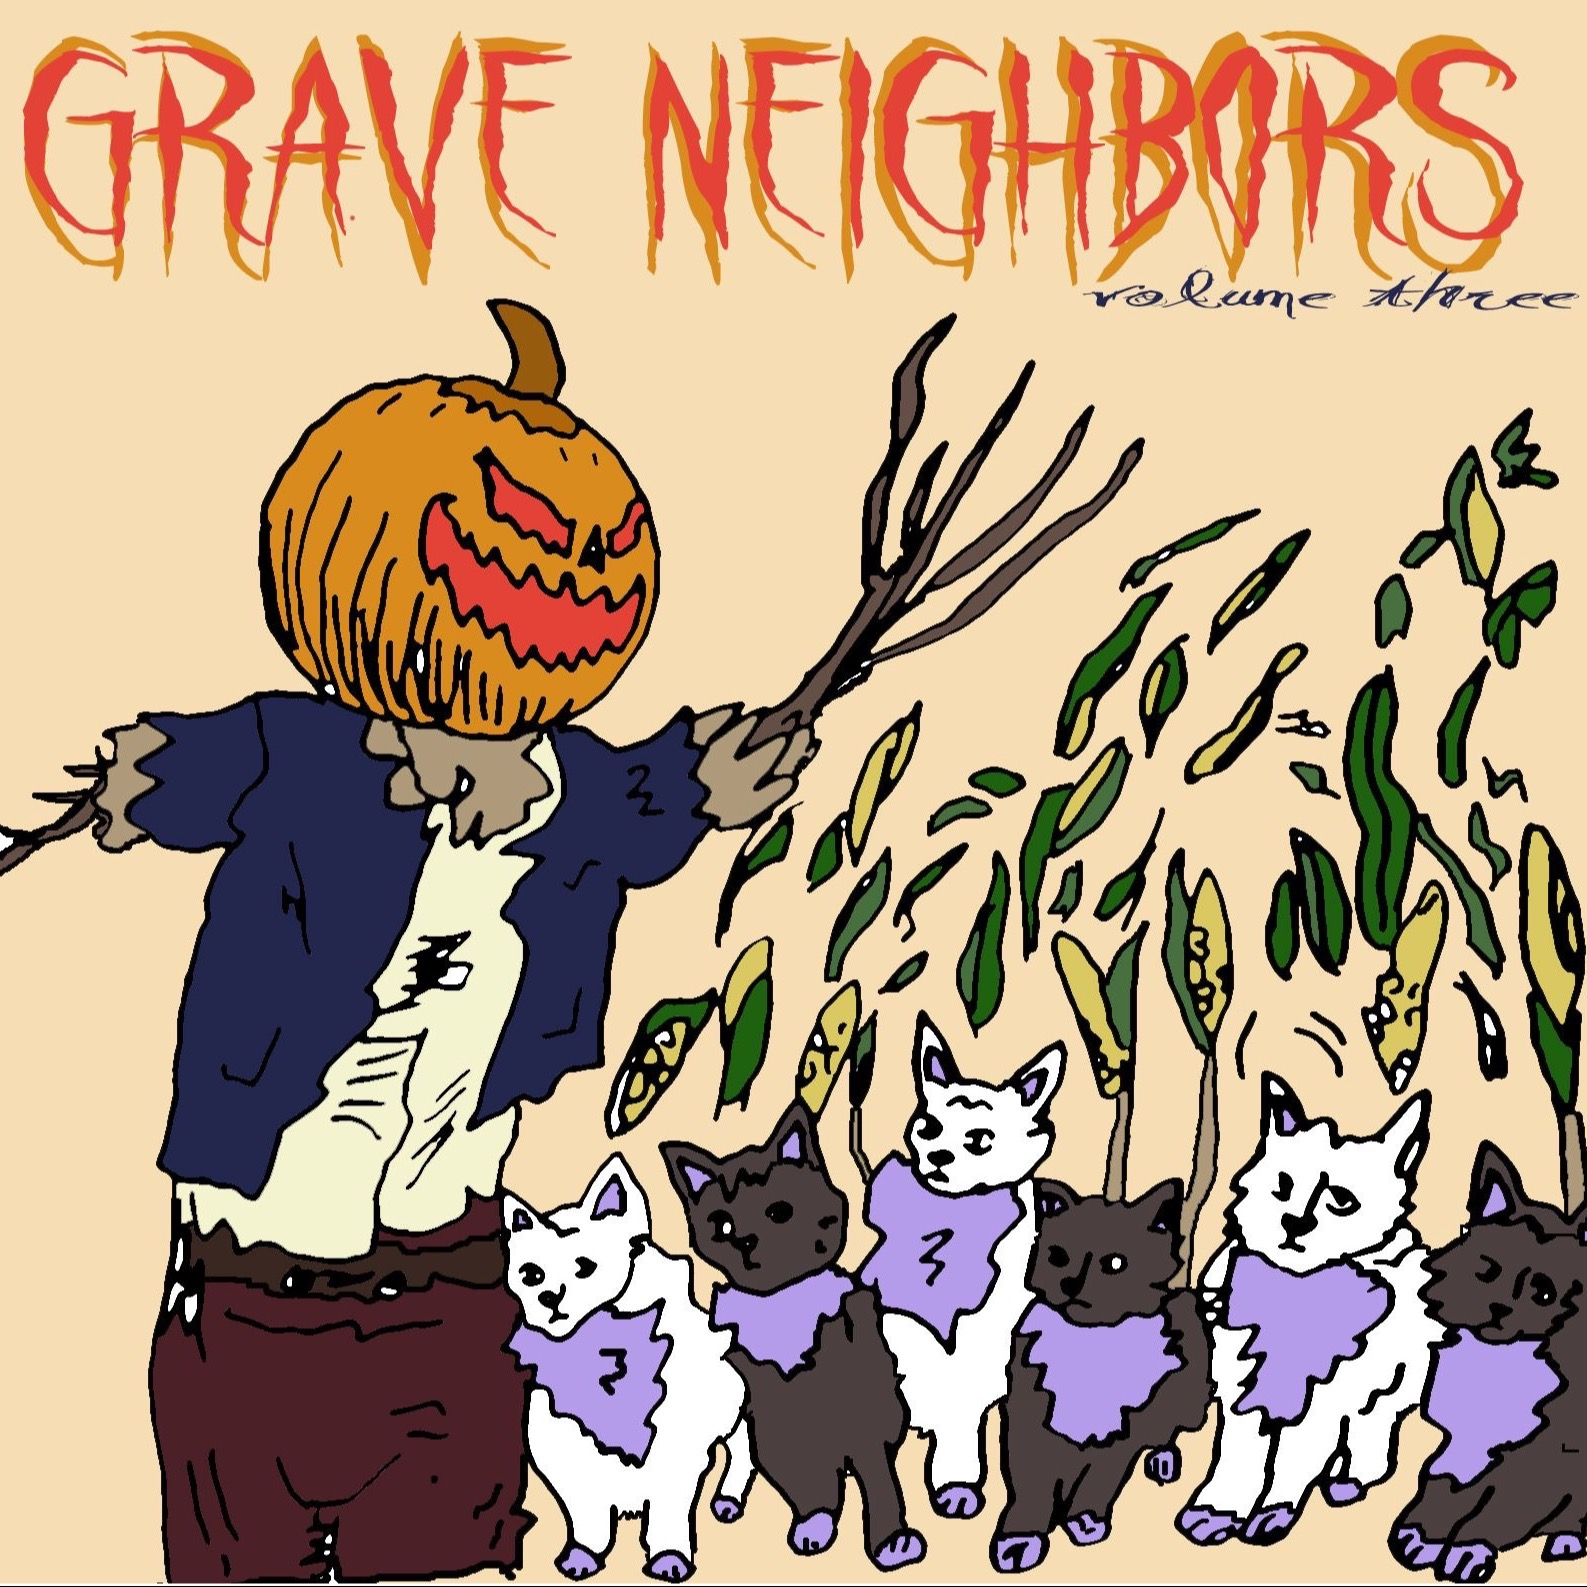 Grave Neighbors Vol 3 Charity Comp for Raicestexas.org on Middle-Man records